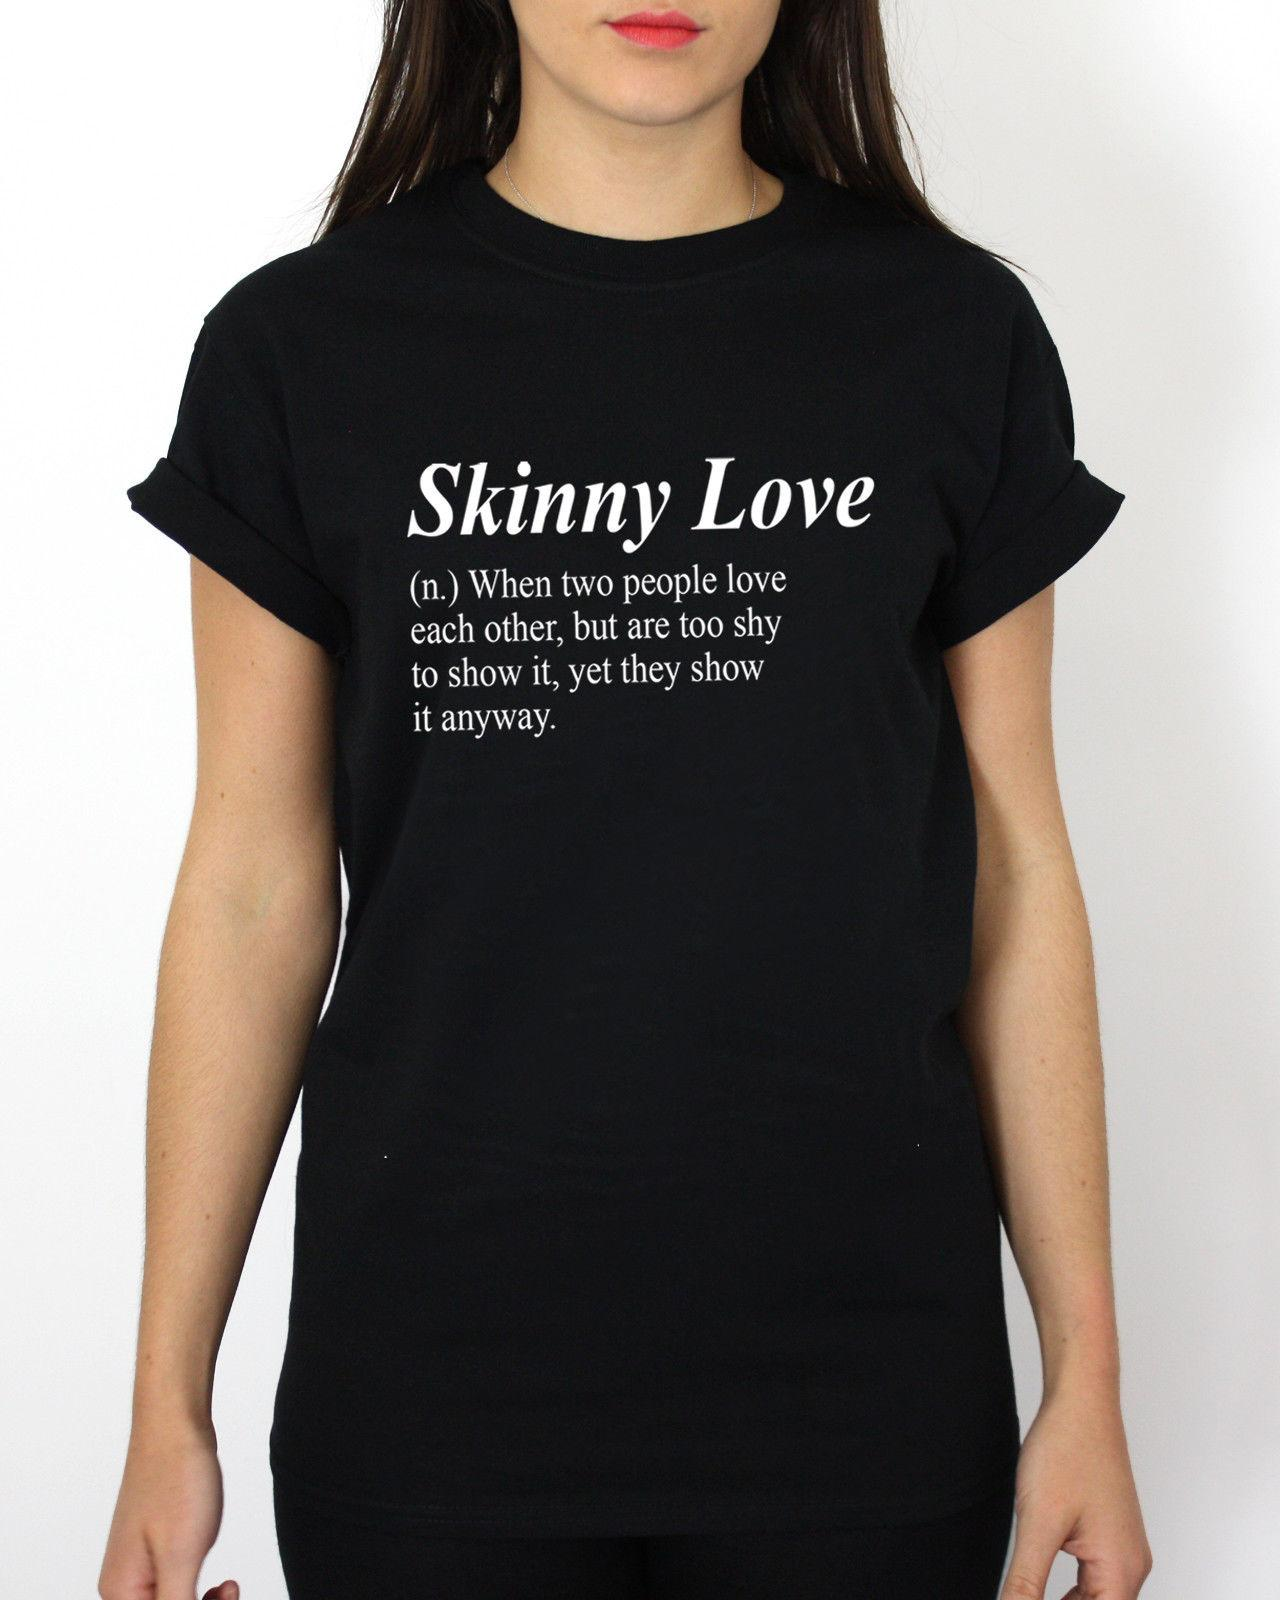 ae732e63 Skinny Love Slogan Definition Black T Shirt Womens Small SALE CLEARANCE A5  Funny Unisex Tee T Shirt Creator Tee Shirt Design From Stshirt, $12.96|  DHgate.